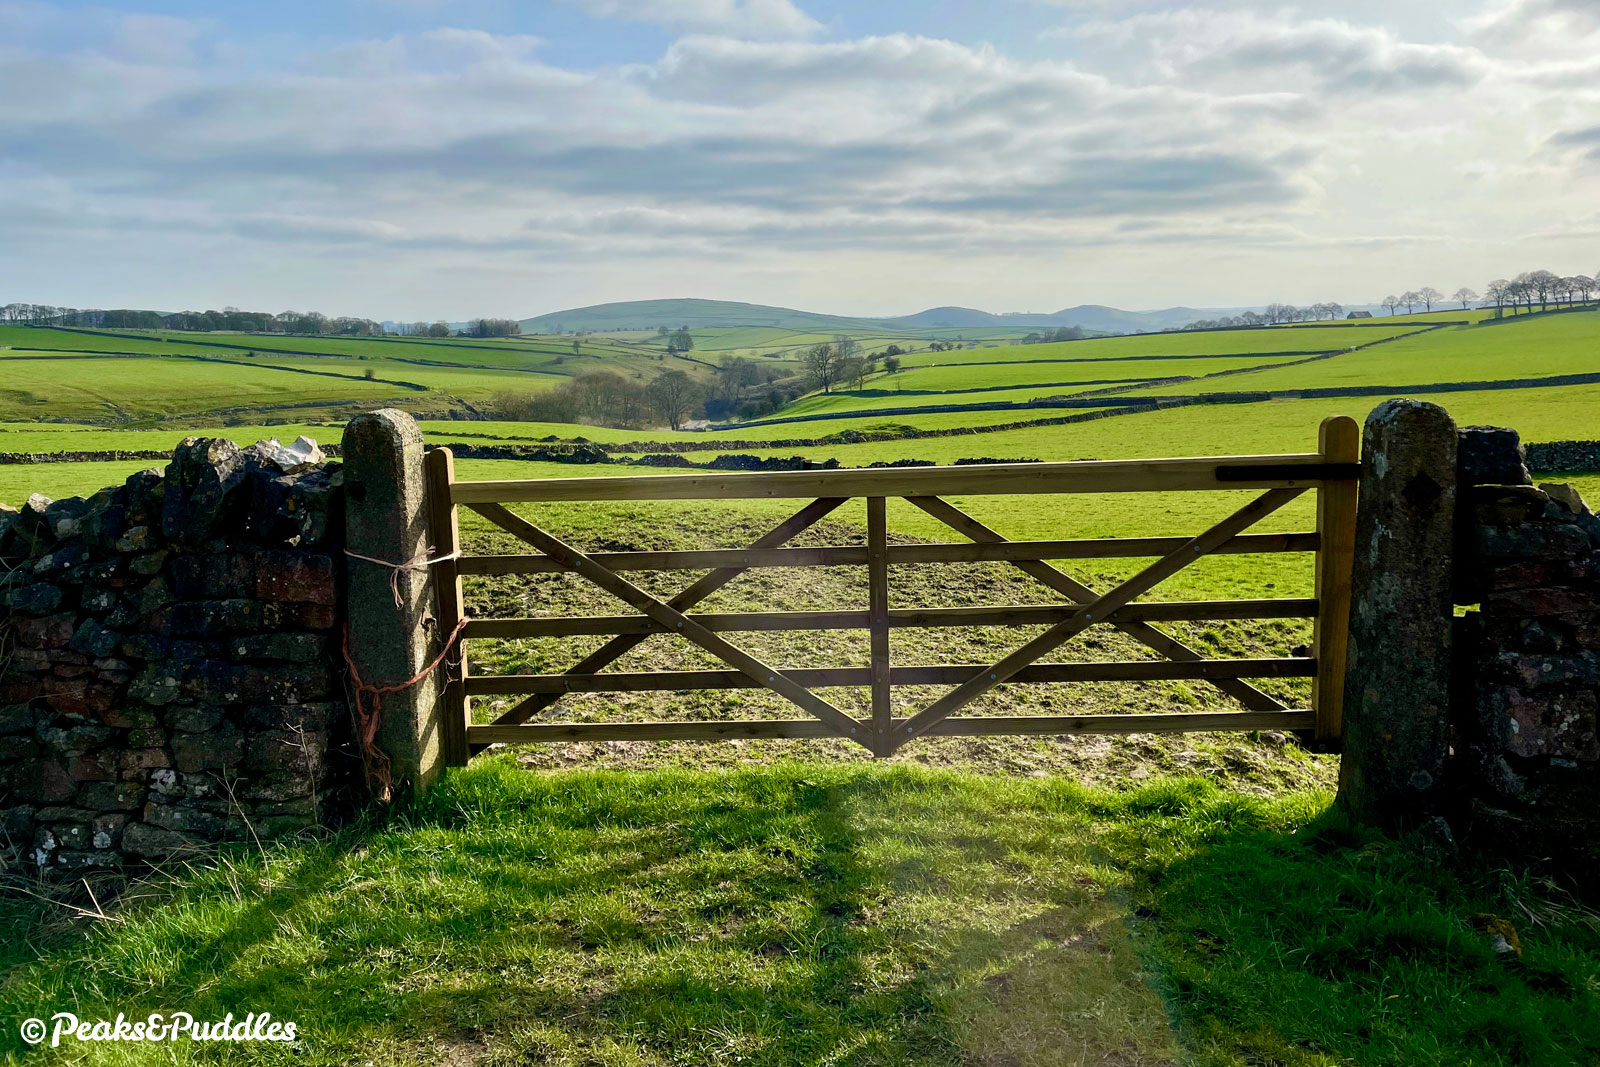 At Hartington Moor Farm, the whipped peaks in the distance mark the Dove Valley in the landscape.